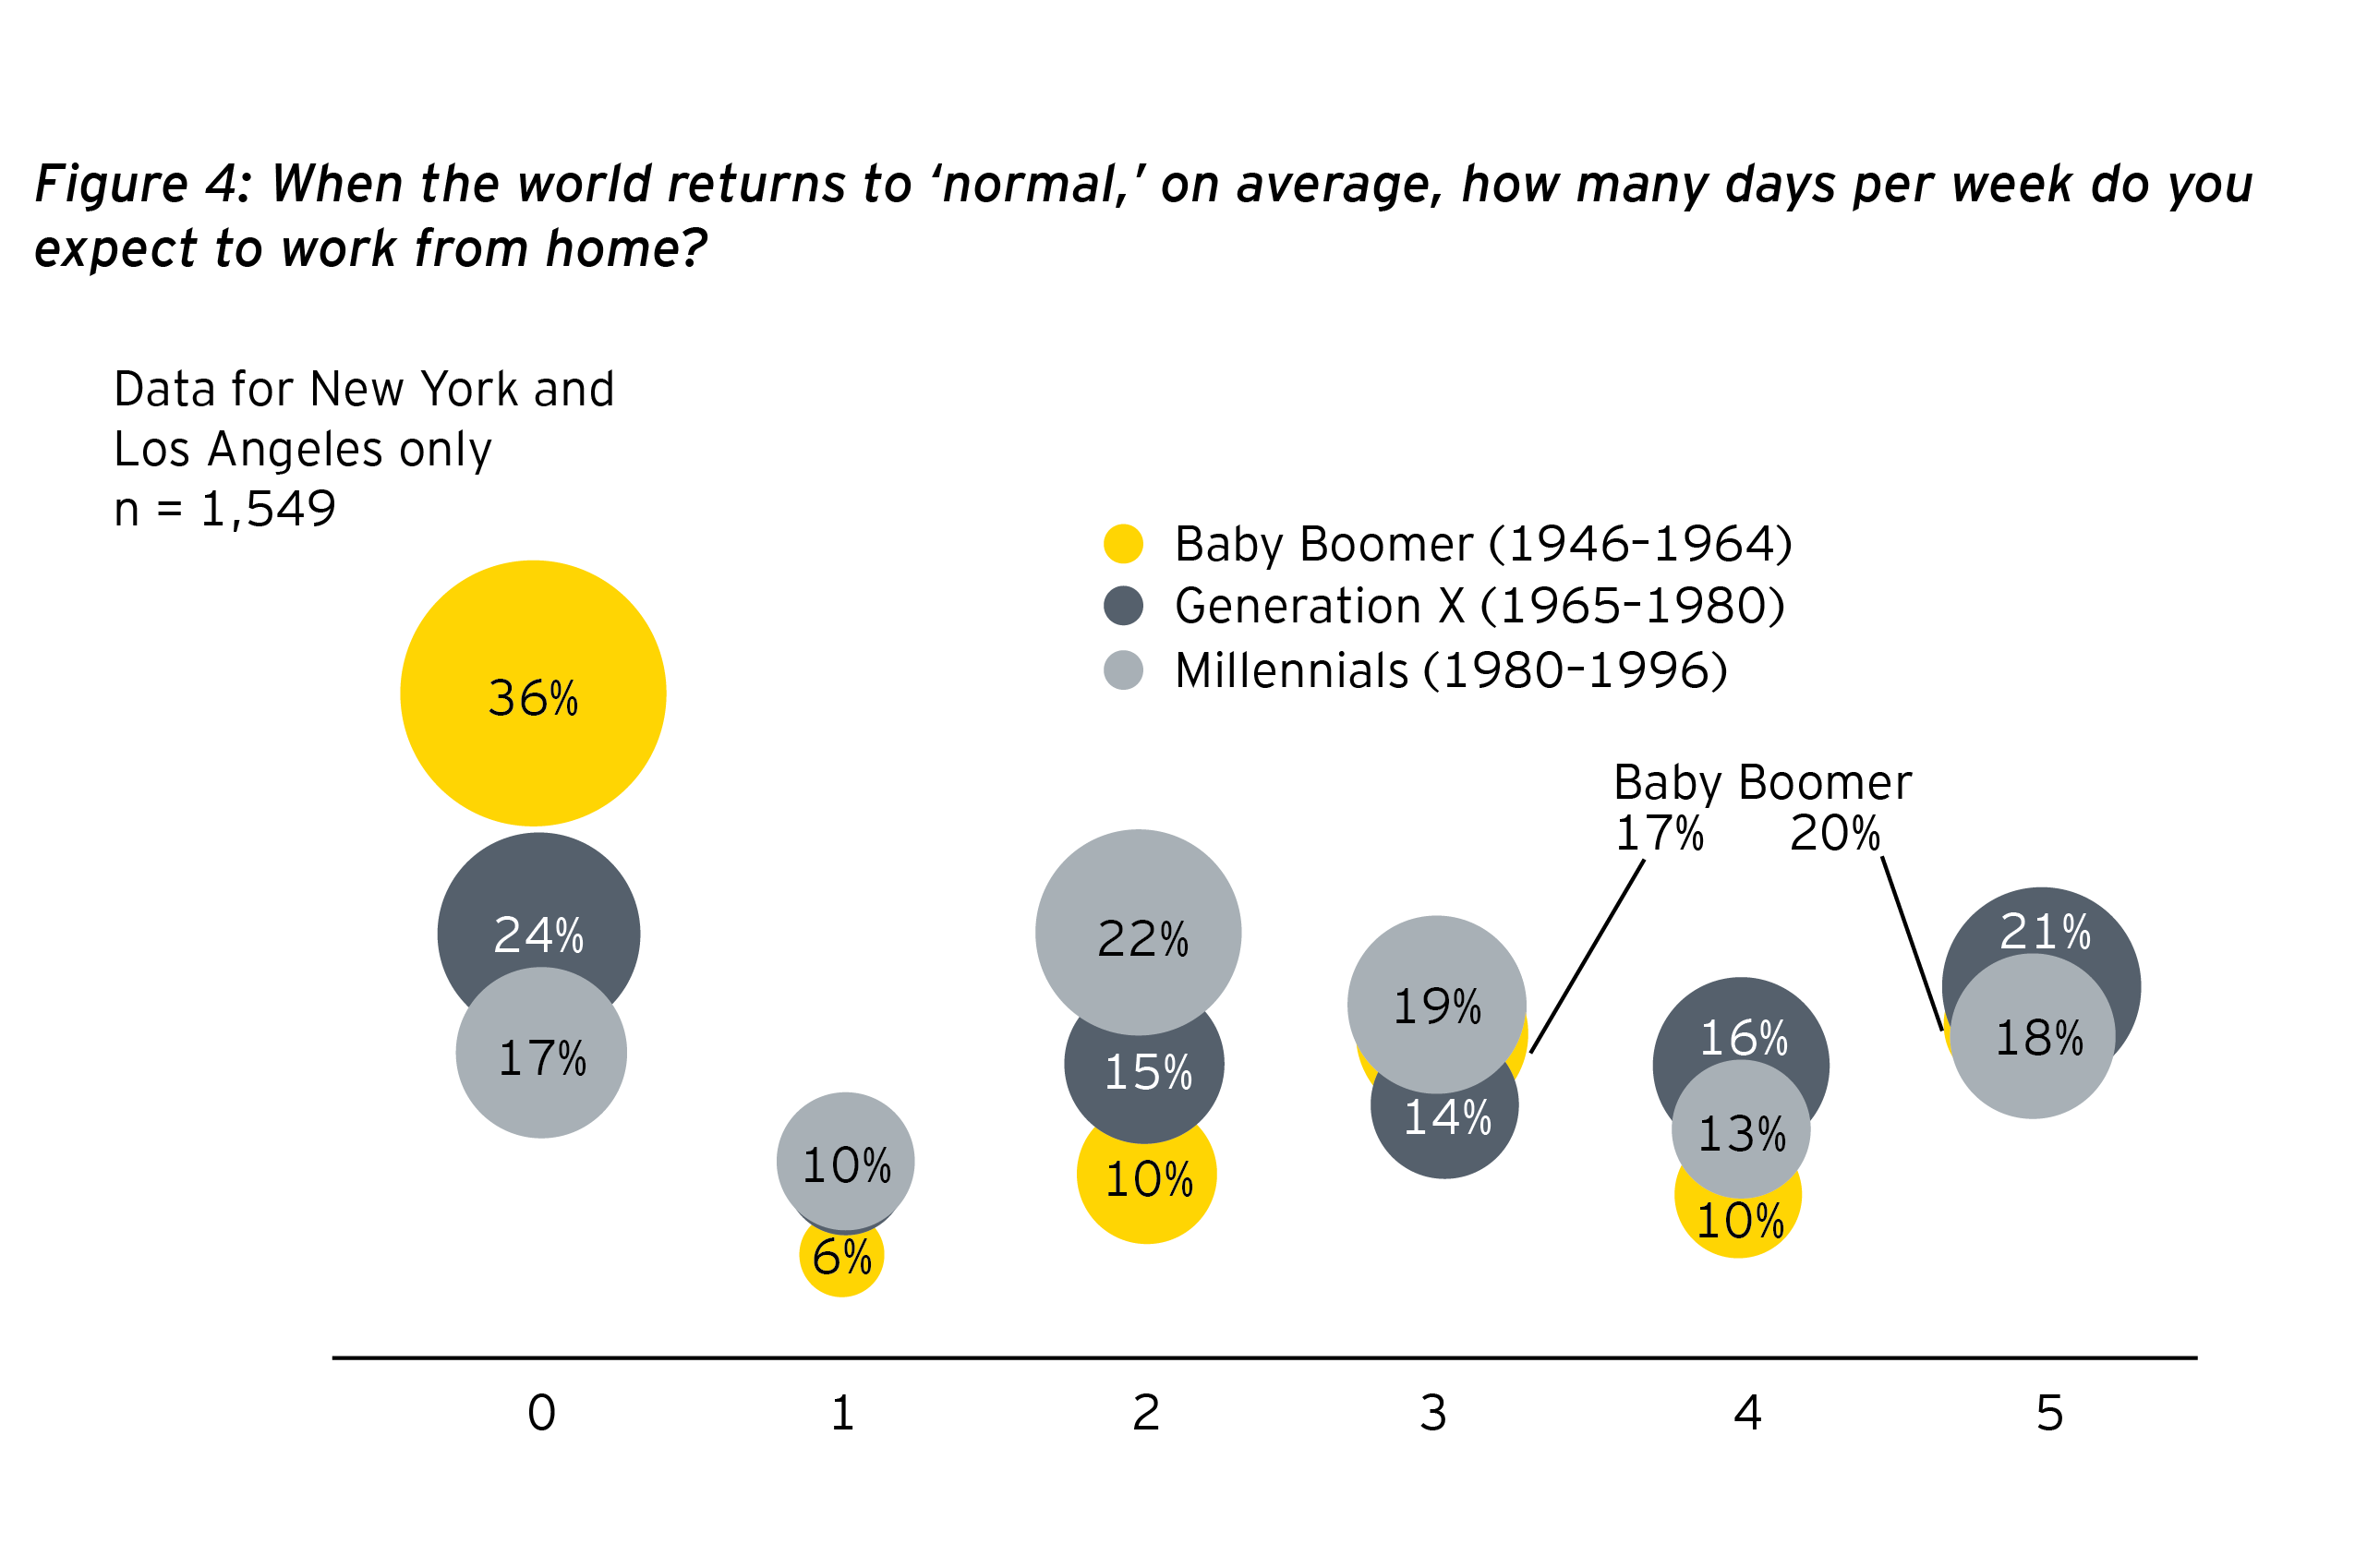 EY - Figure 4: When the world returns to 'normal', on average, how many days per week do you expect to work from home?